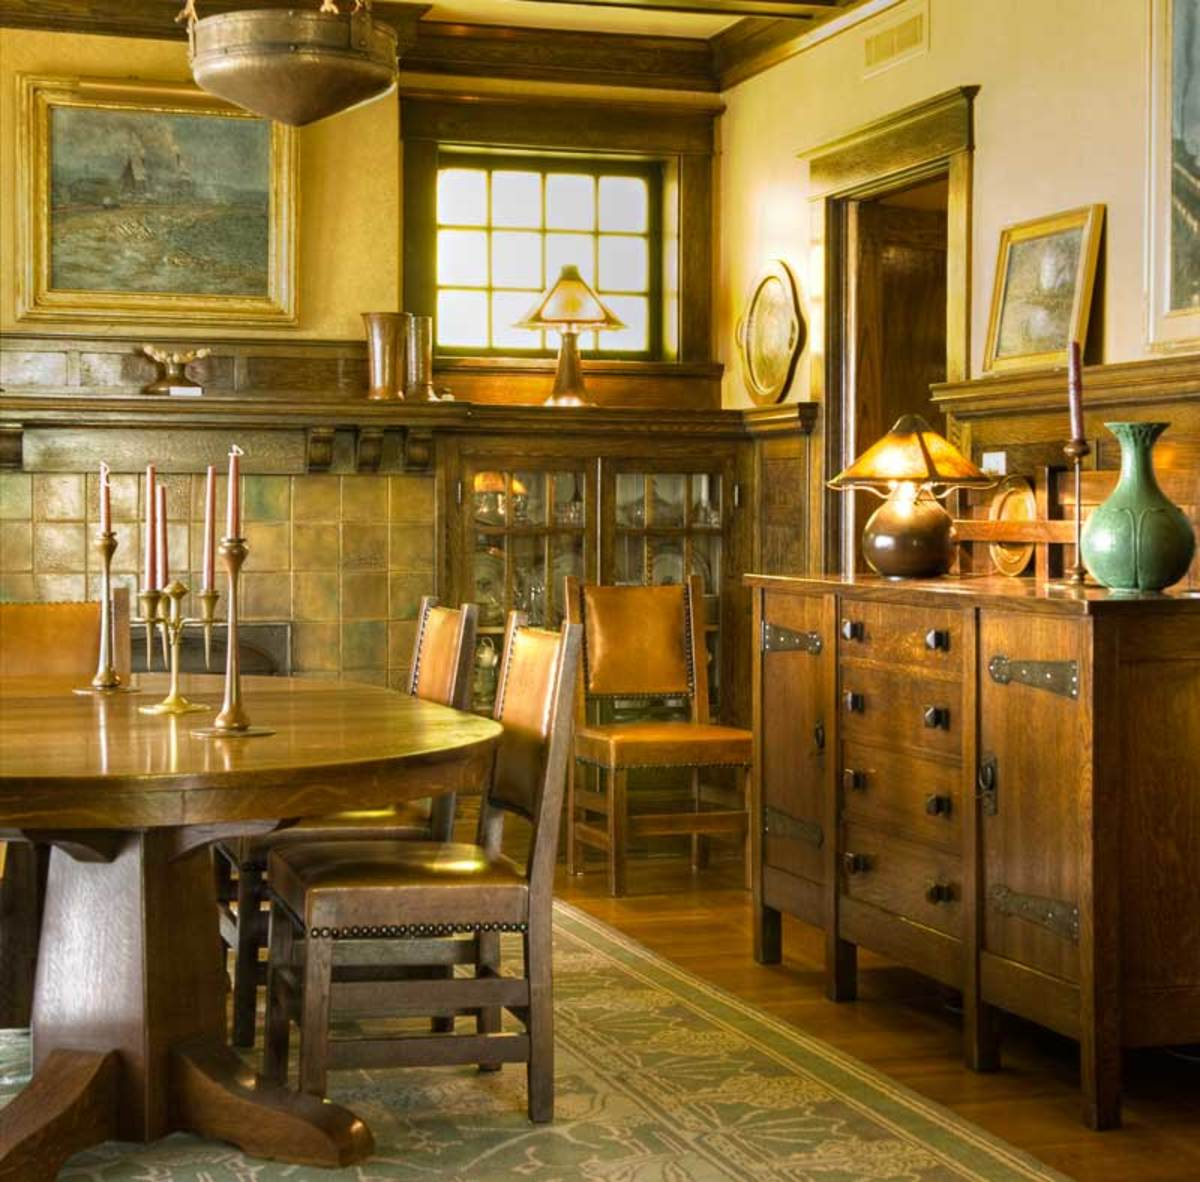 Stickley Originals Grace The Dining Room In A 1915 Prairie Influenced  Foursquare In Pittsburgh.